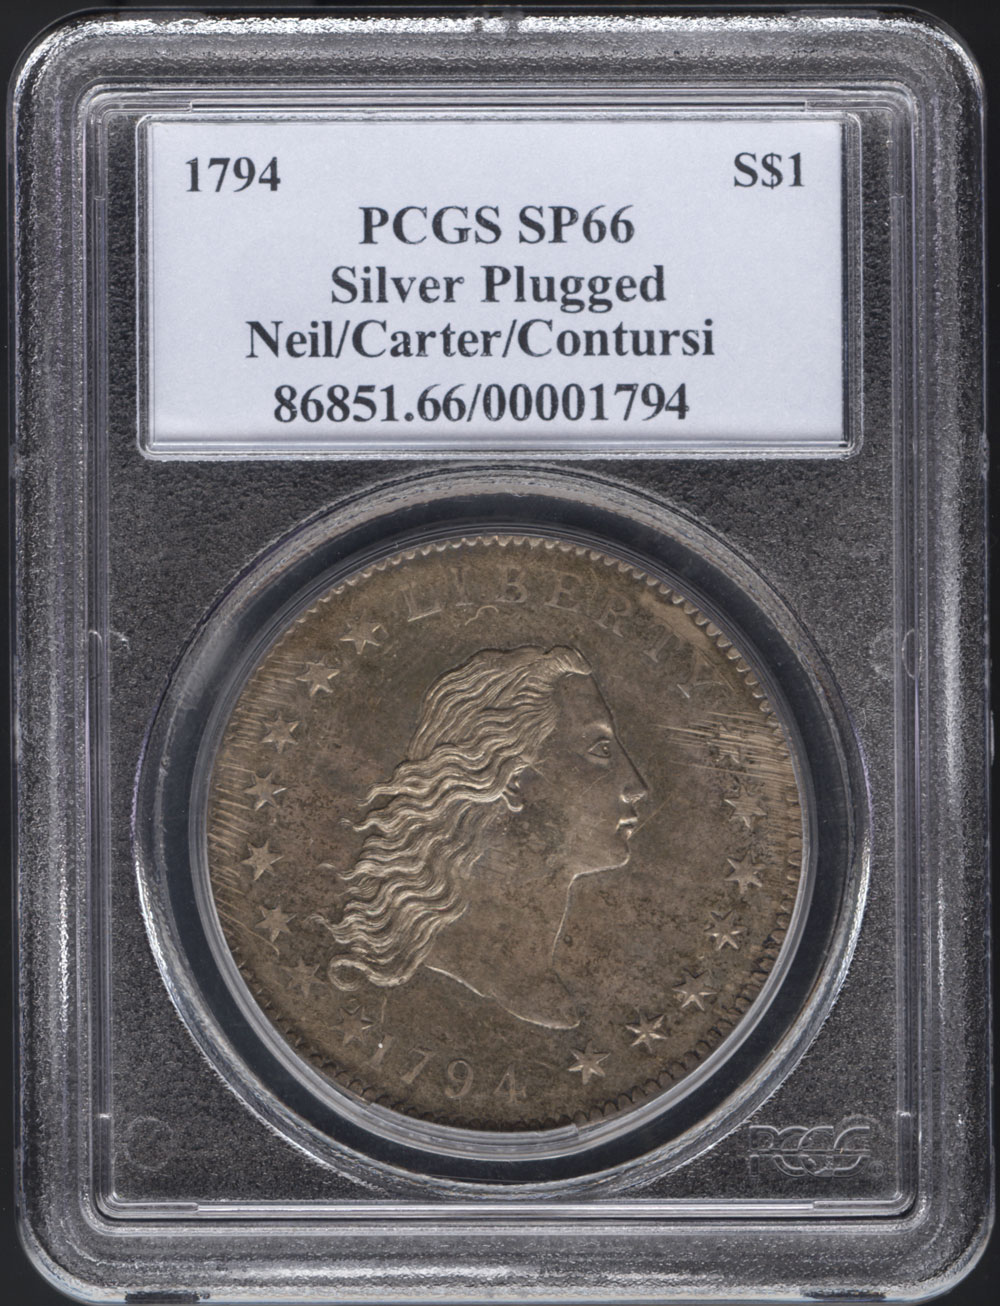 Most Expensive Coin 1794 Liberty Dollar Sets World Record